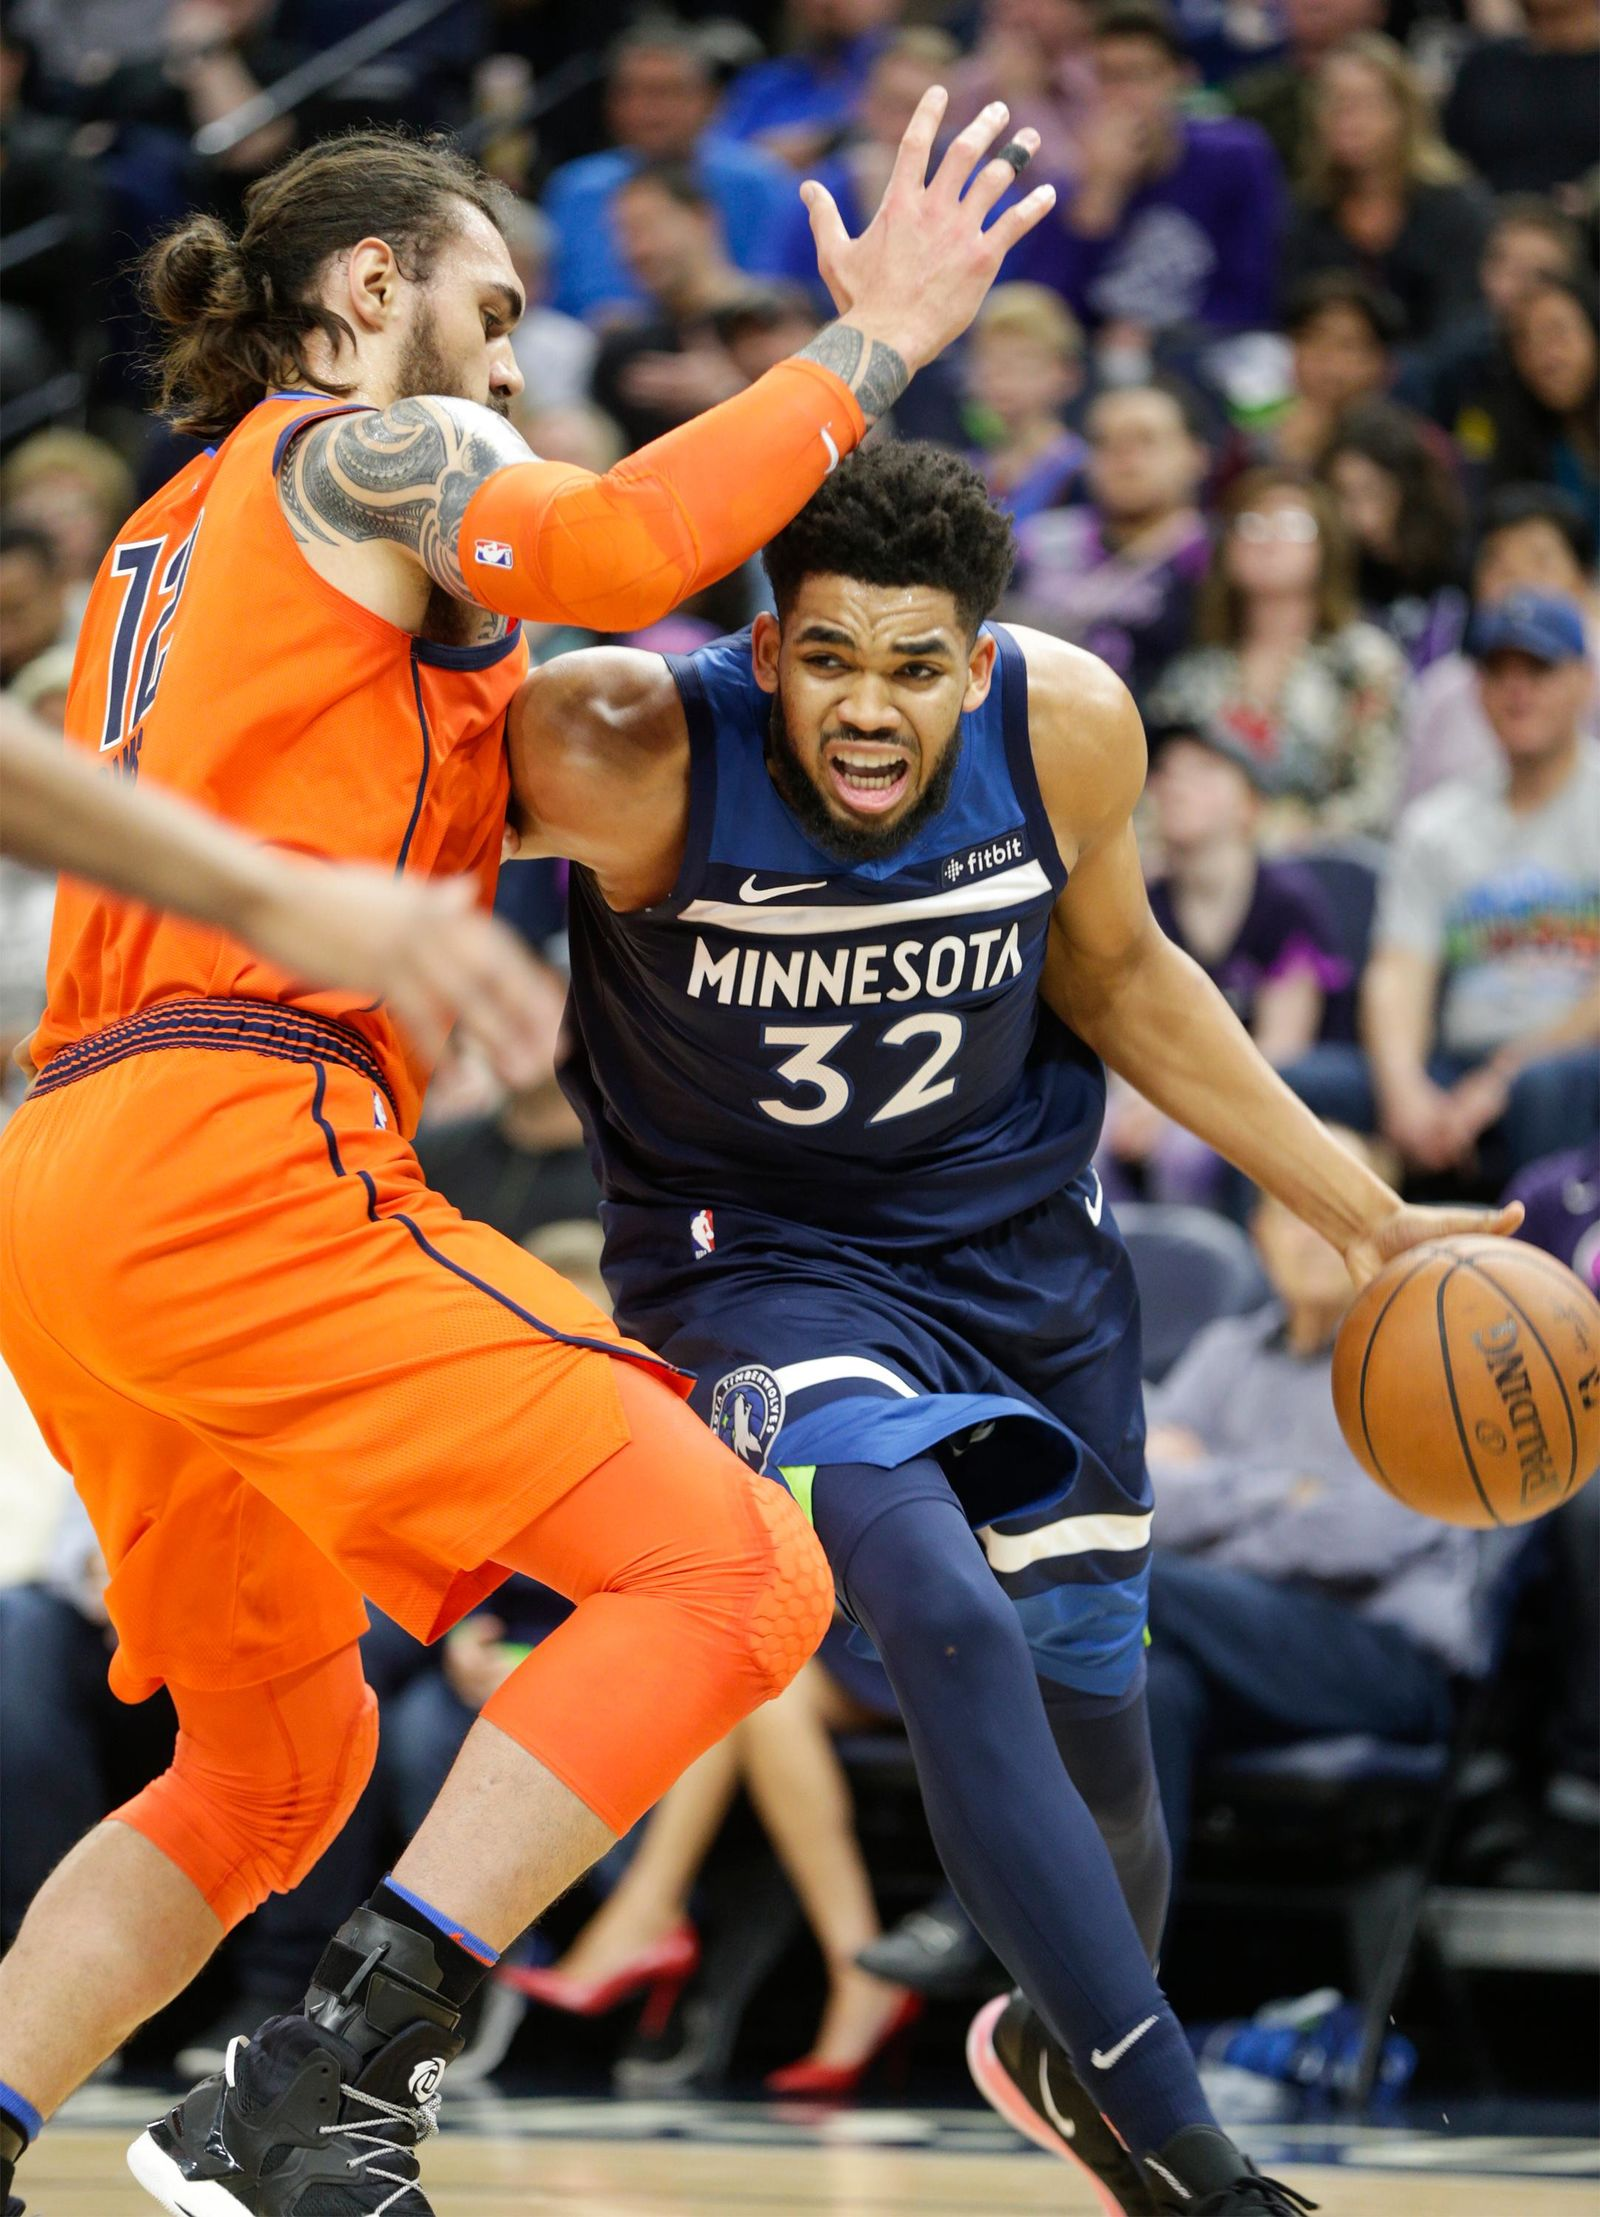 Minnesota Timberwolves center Karl-Anthony Towns (32) drives against Oklahoma City Thunder center Steven Adams, of New Zealand, (12) during the first half of a NBA basketball game Sunday, April 7, 2019, in Minneapolis. (AP Photo/Paul Battaglia)